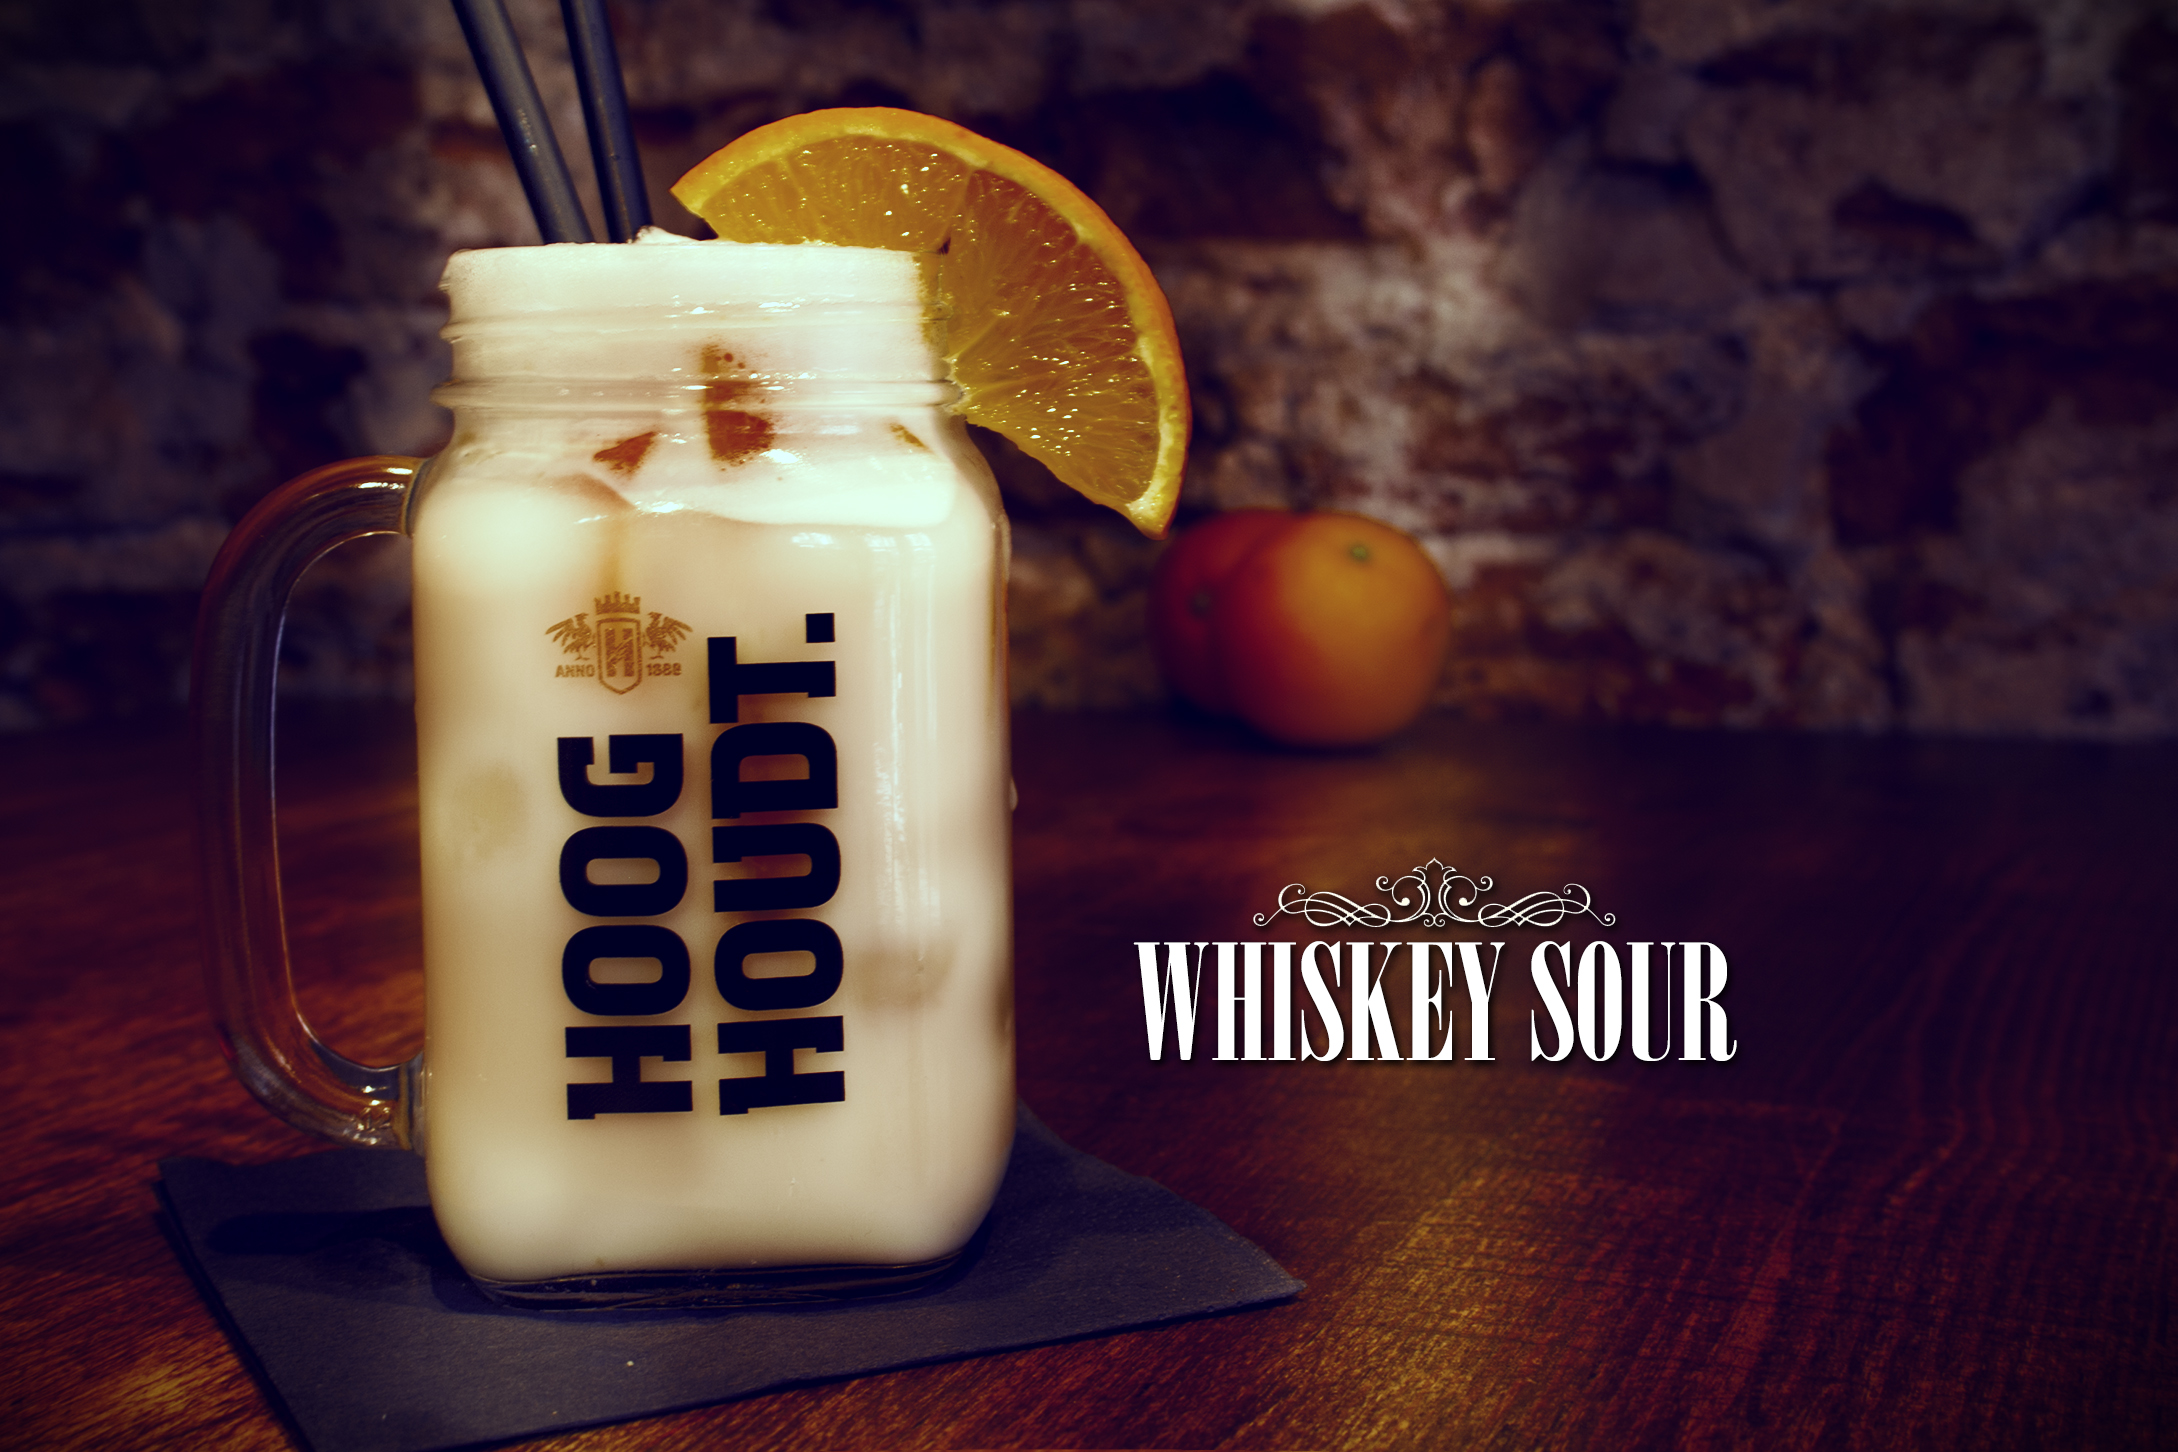 004 - Whiskey Sour